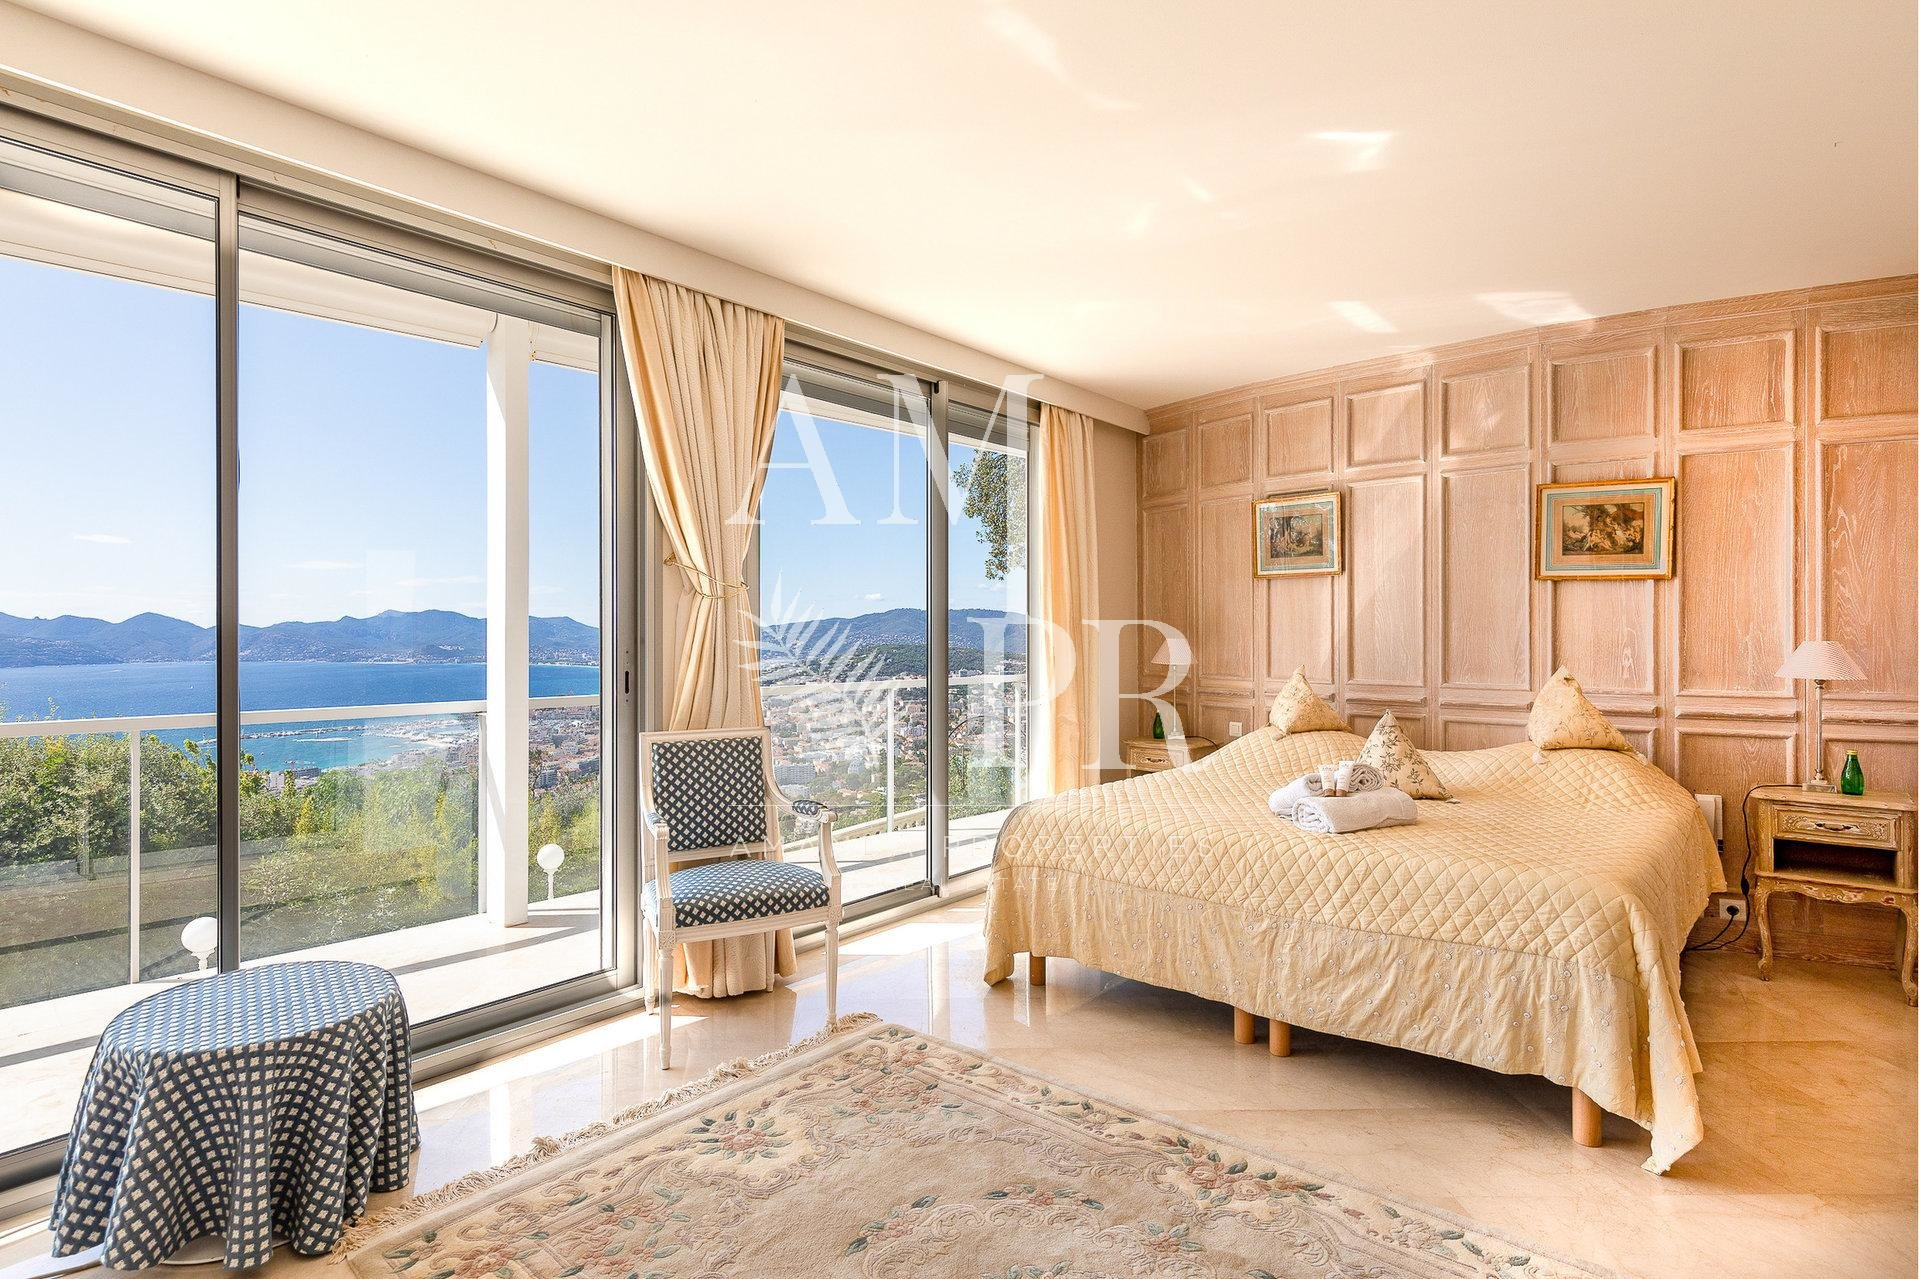 CANNES HAUTE CALIFORNIE HOTEL PARTICULIER LUXE VUE PANORAMIQUE MER